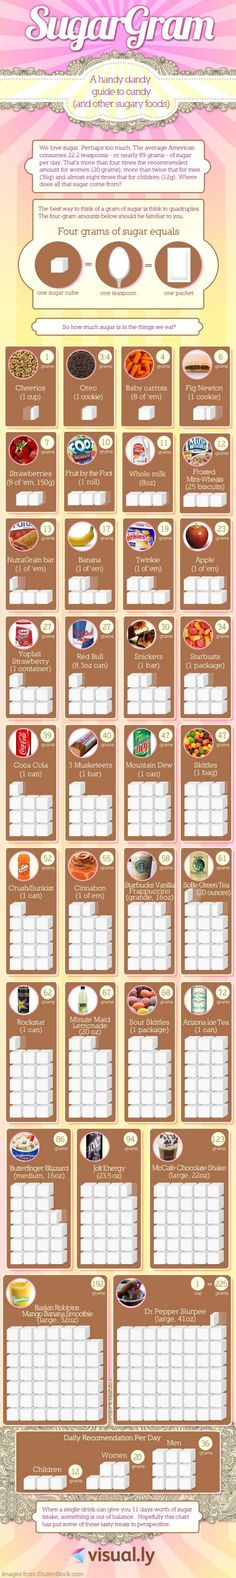 Your Guide to Sugar. Here's a visual guide to knowing which food is sugar-rich which ones are okay to eat. Too much sugar is not good for the body. Just another way to take care of your skin.